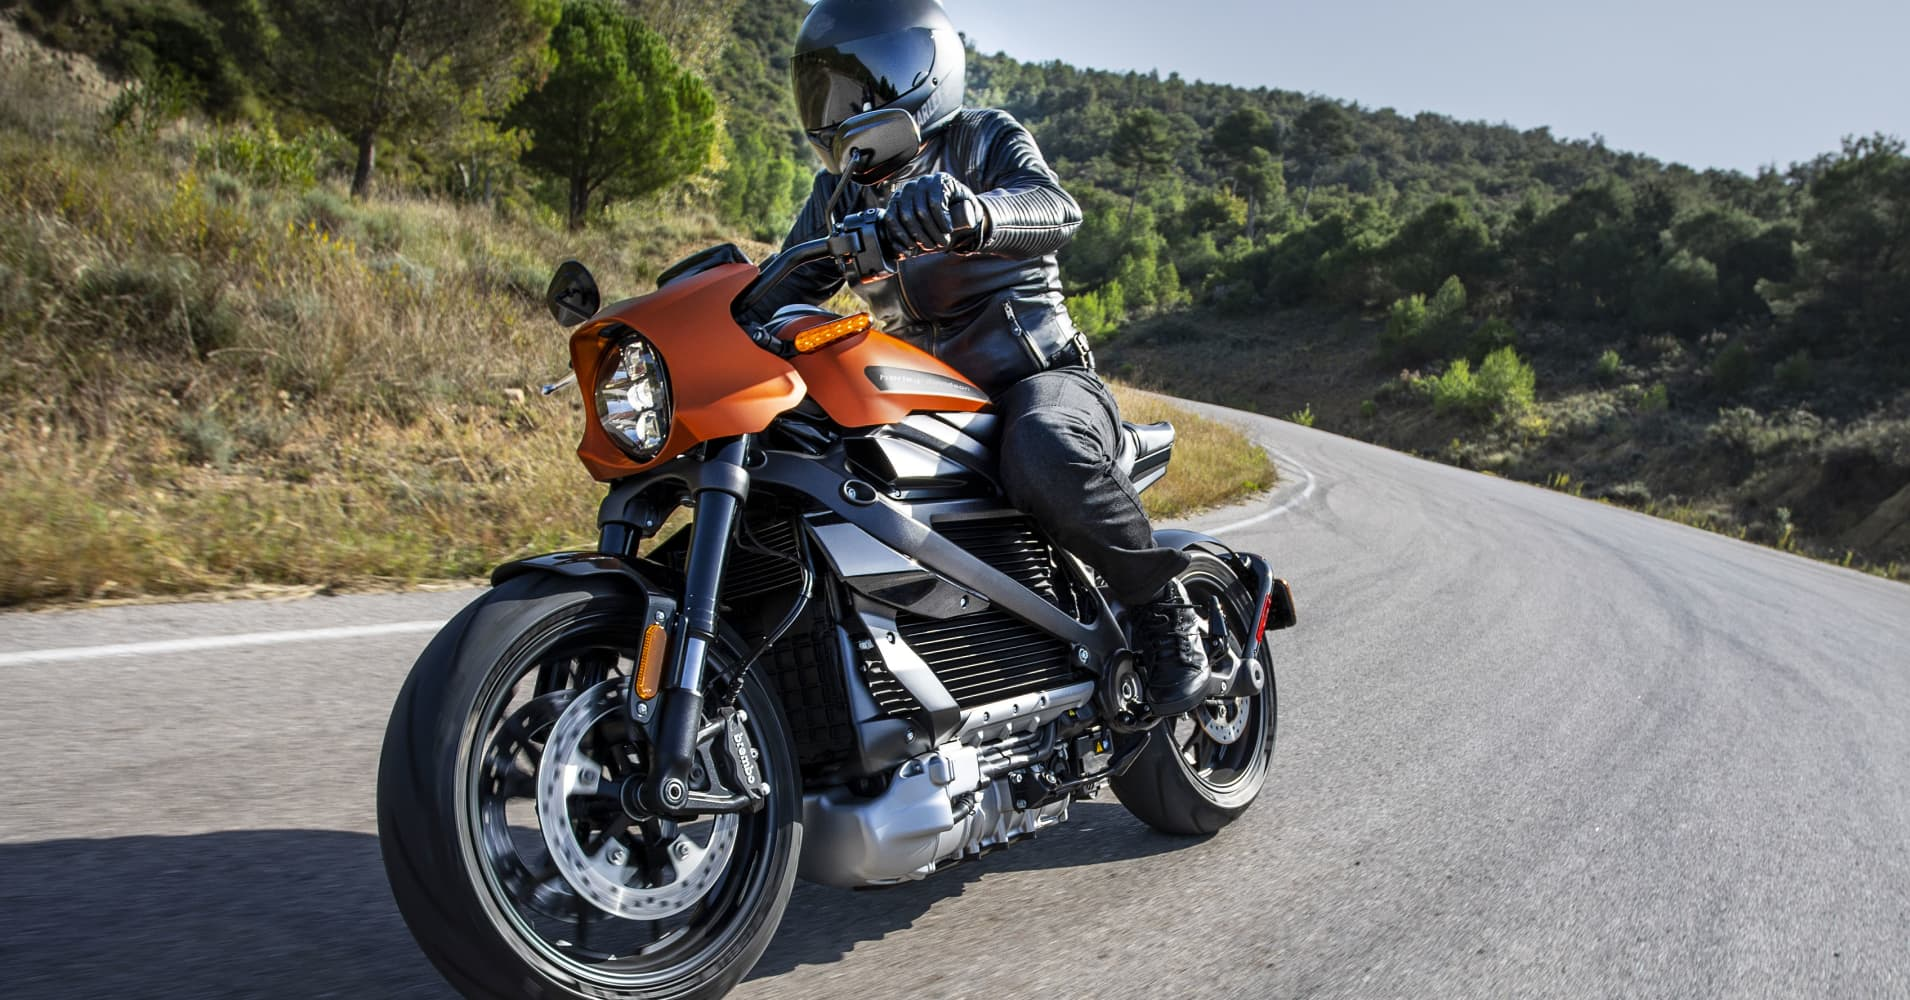 Harley-Davidson's electric motorcycle signals a big change for the legendary but troubled company